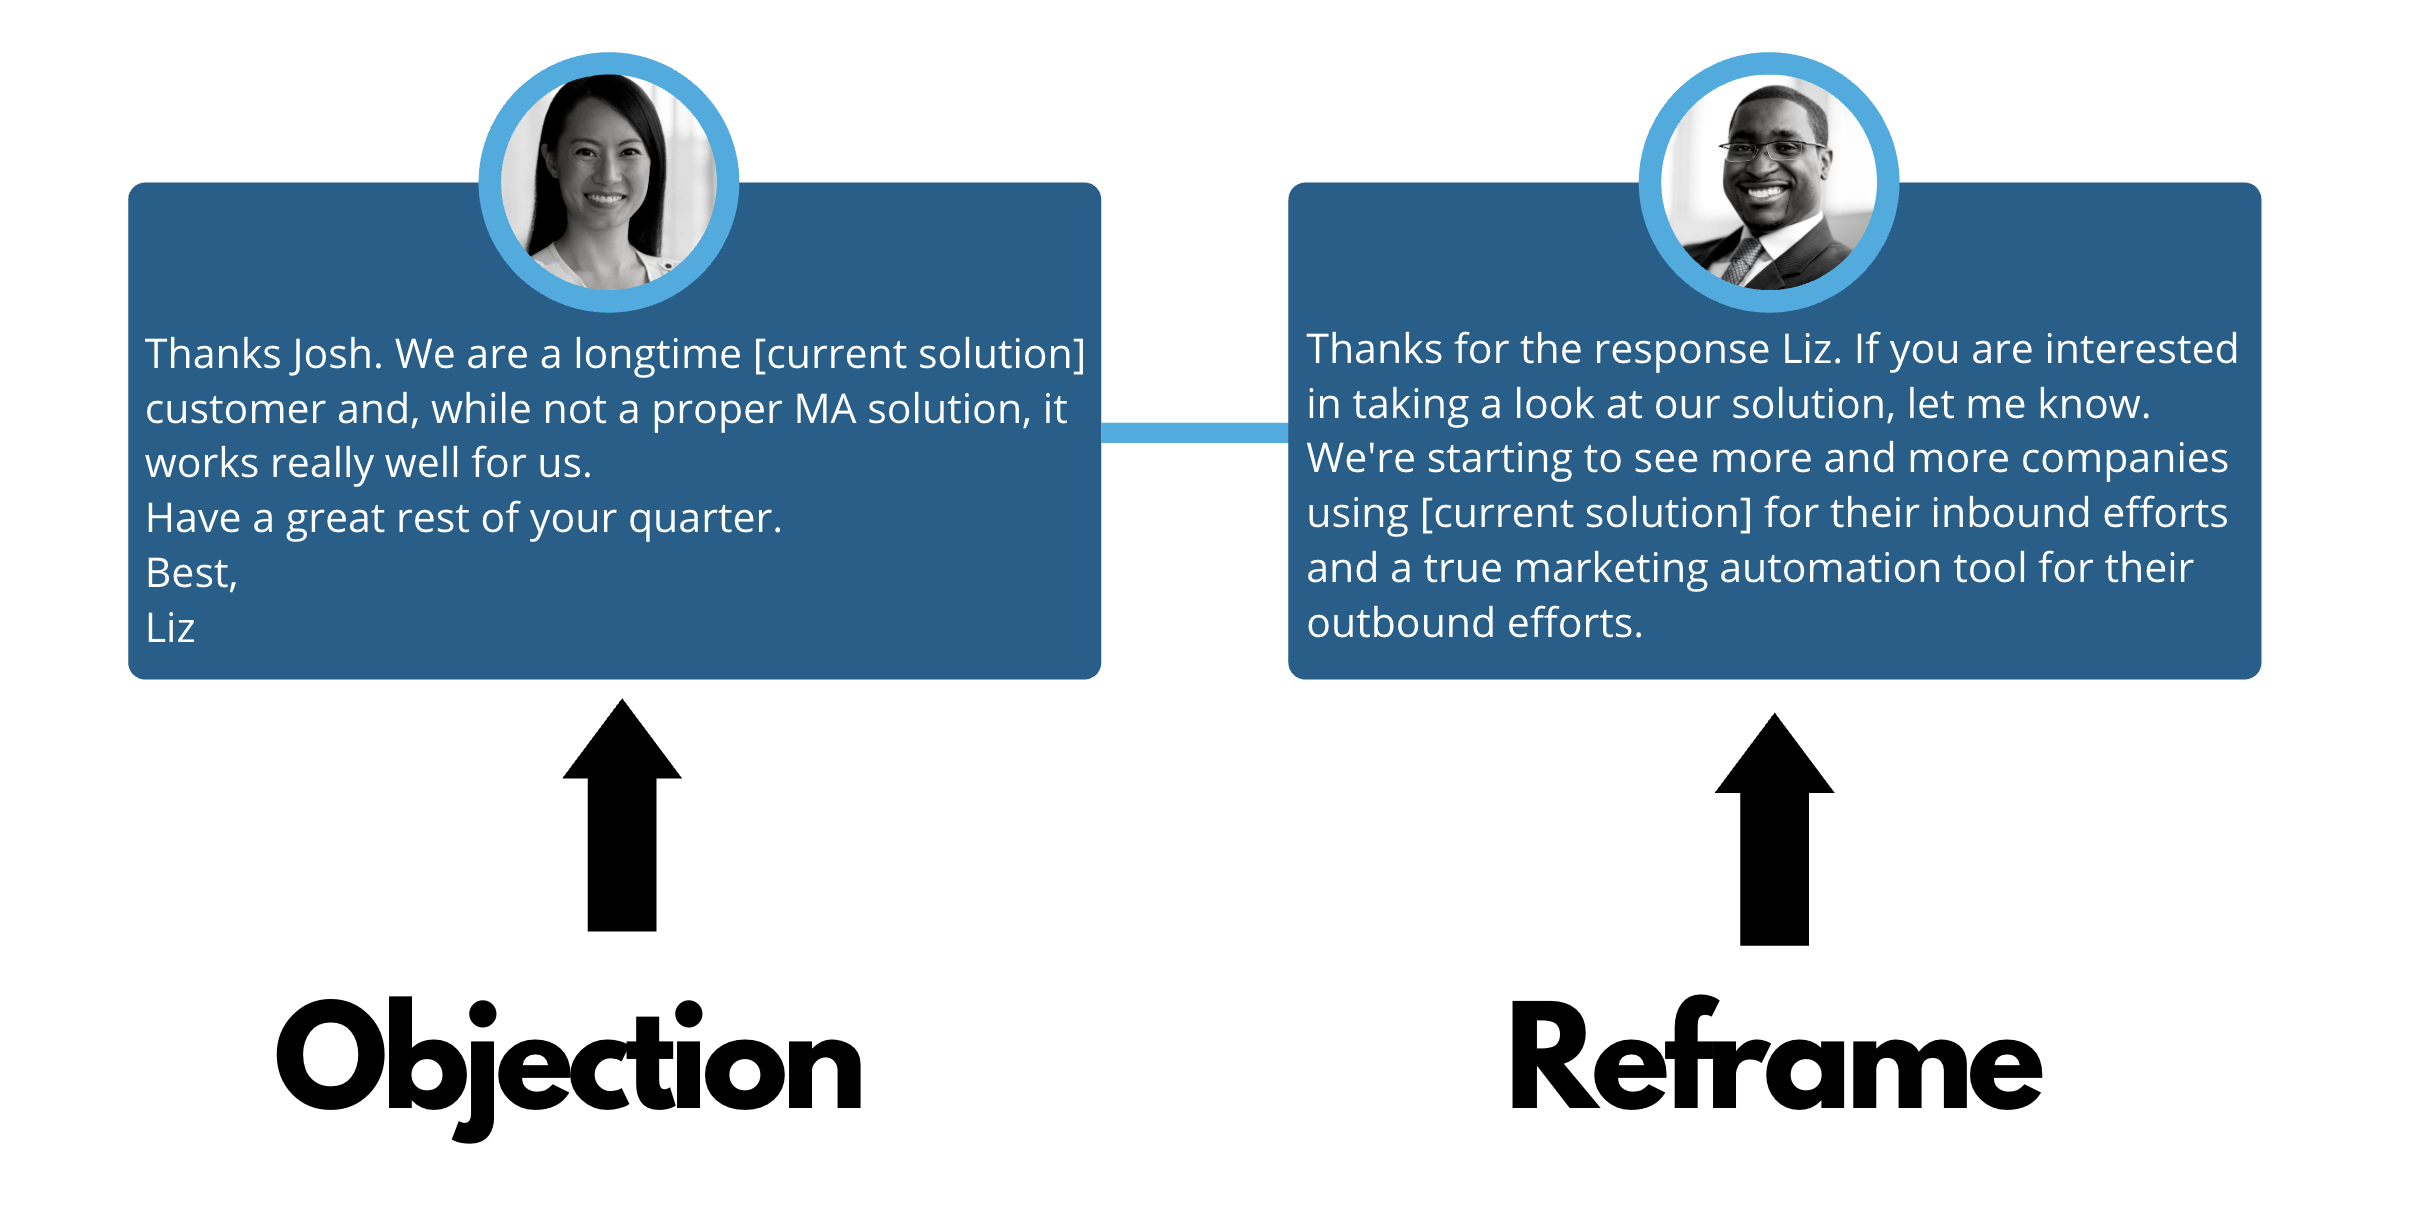 overcoming sales objections: objection, reframe